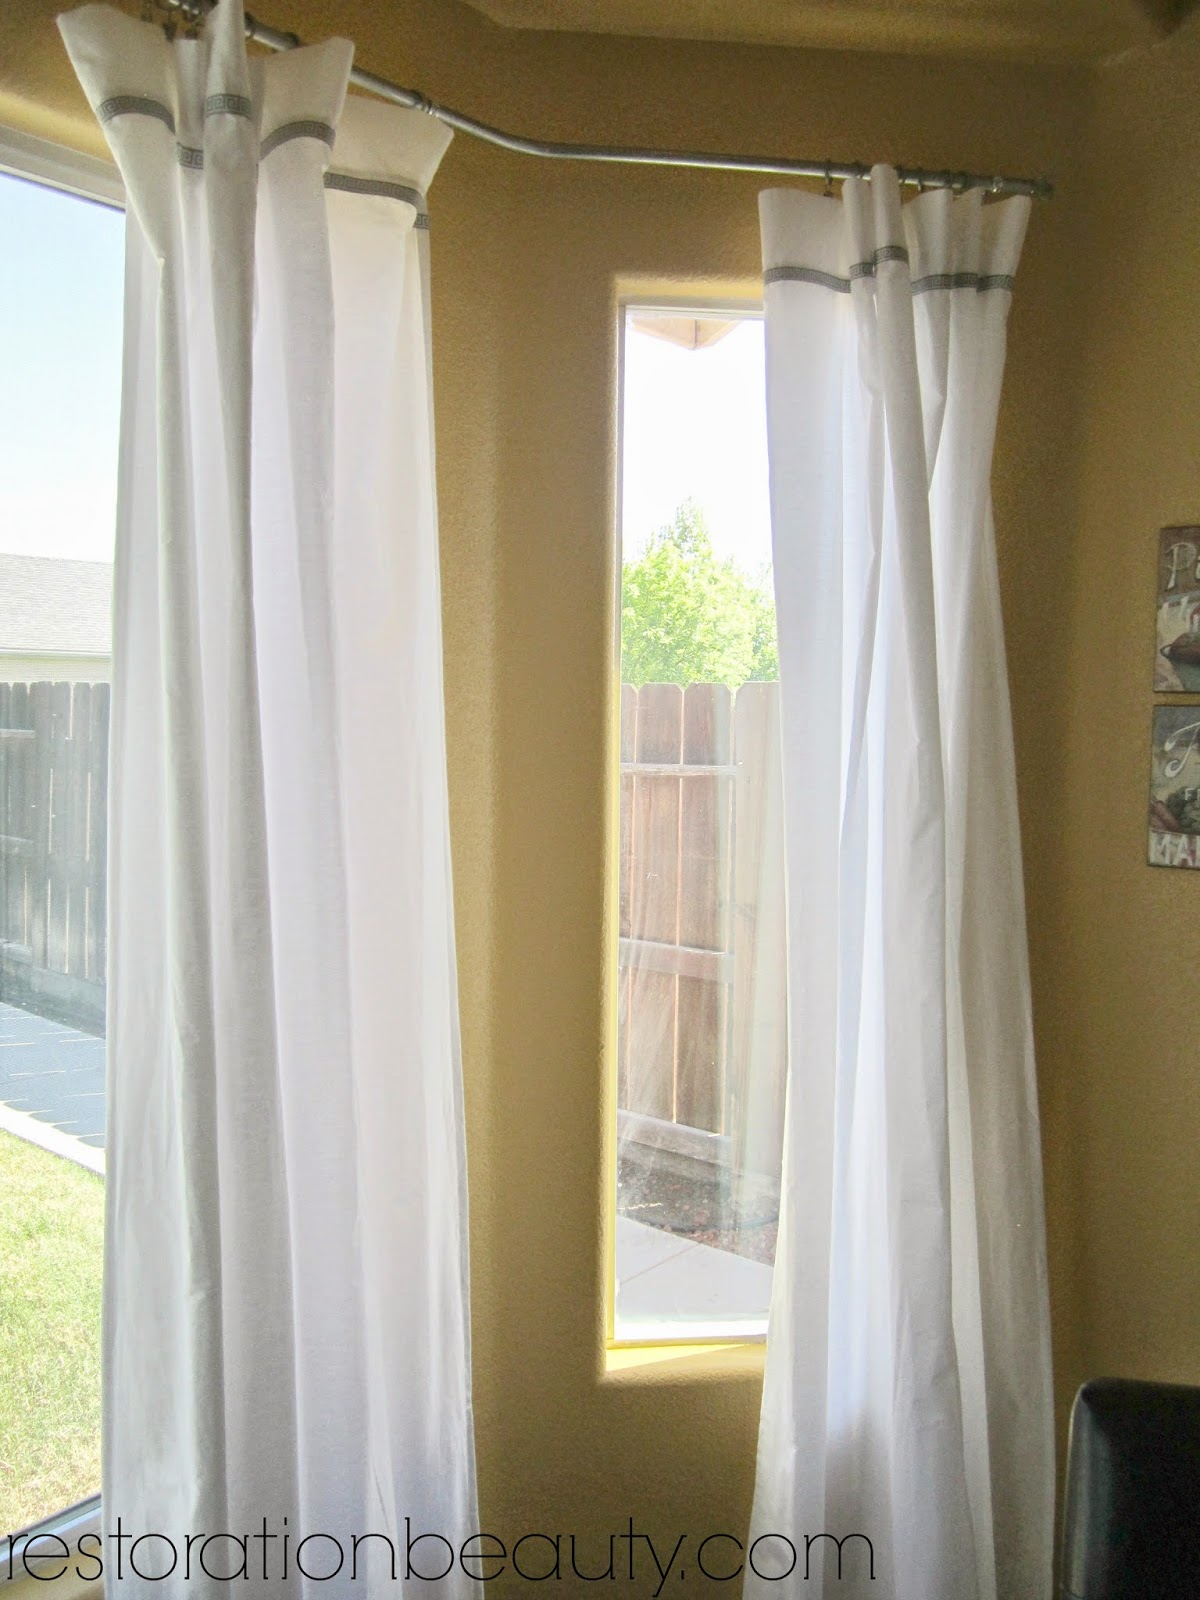 Bay windows and corner curtain rods apps directories - Restoration Beauty Conduit Pipe Bay Window Curtain Rod Bed